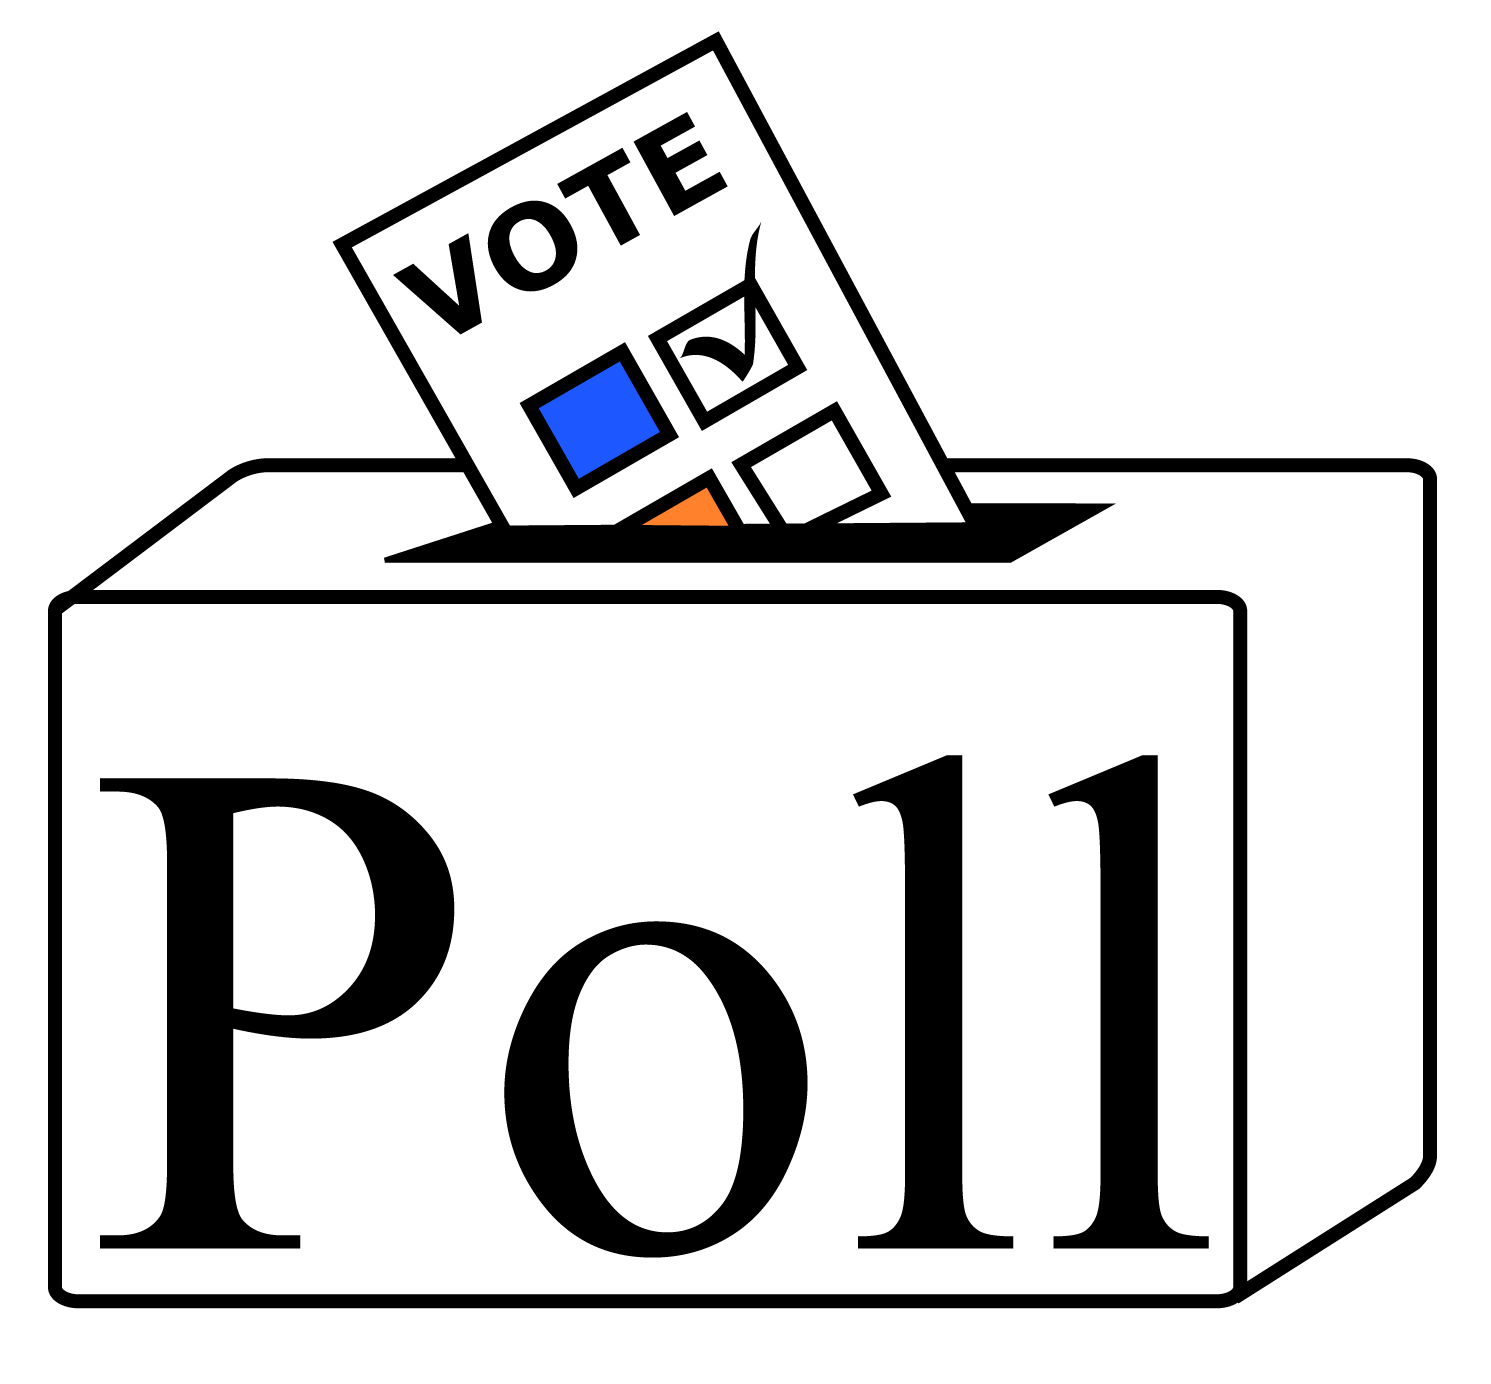 Data clipart poll. Election what do you